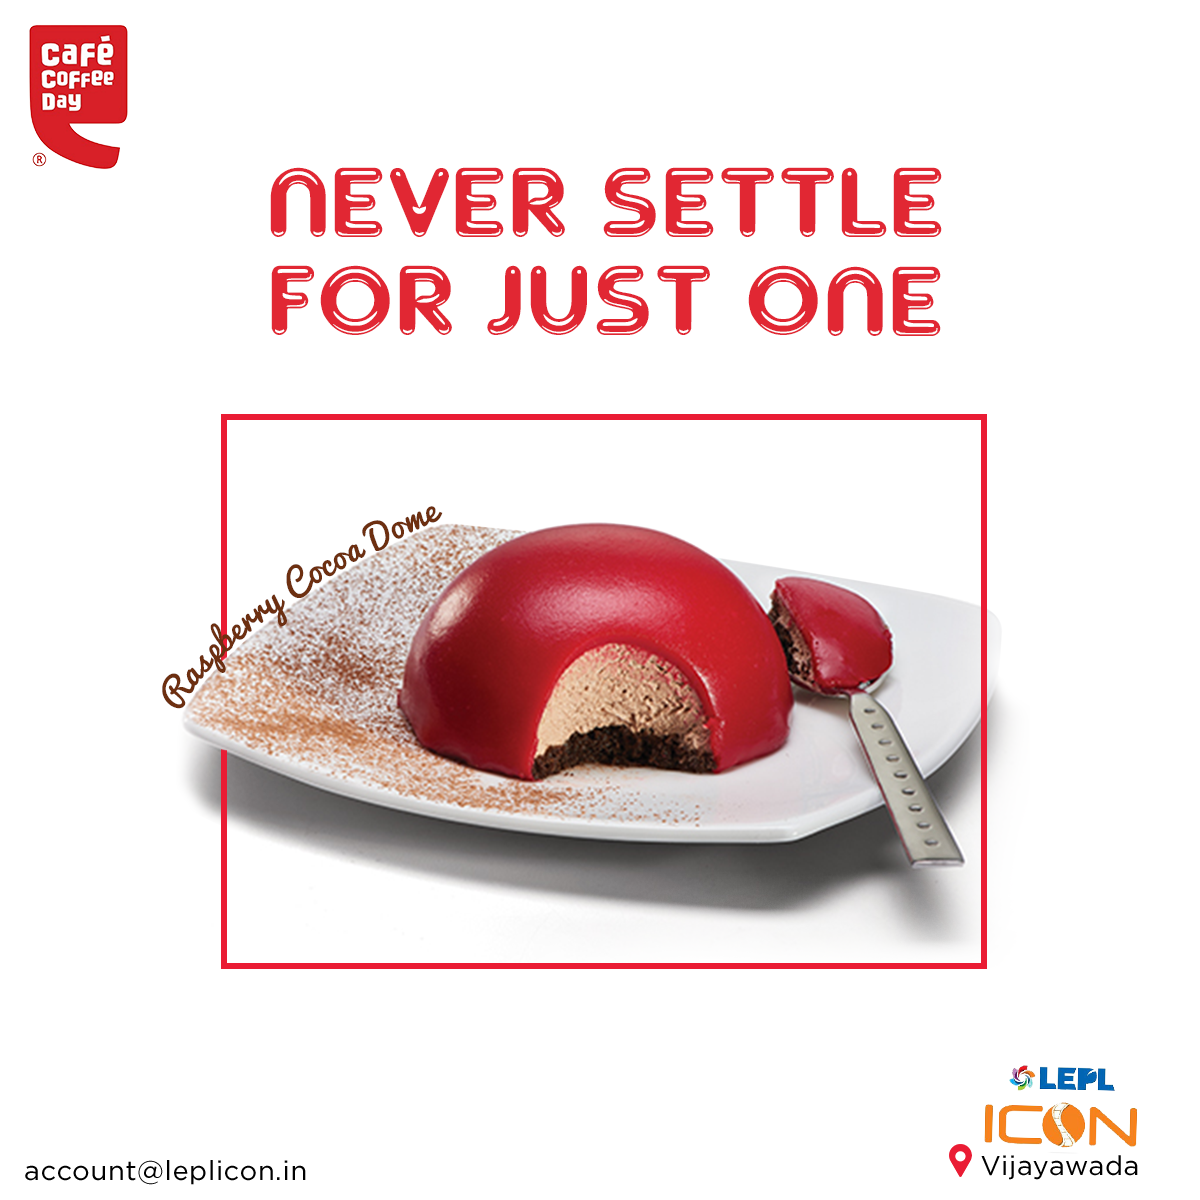 Check out Cafe Coffee Day's latest Dessert Delights menu